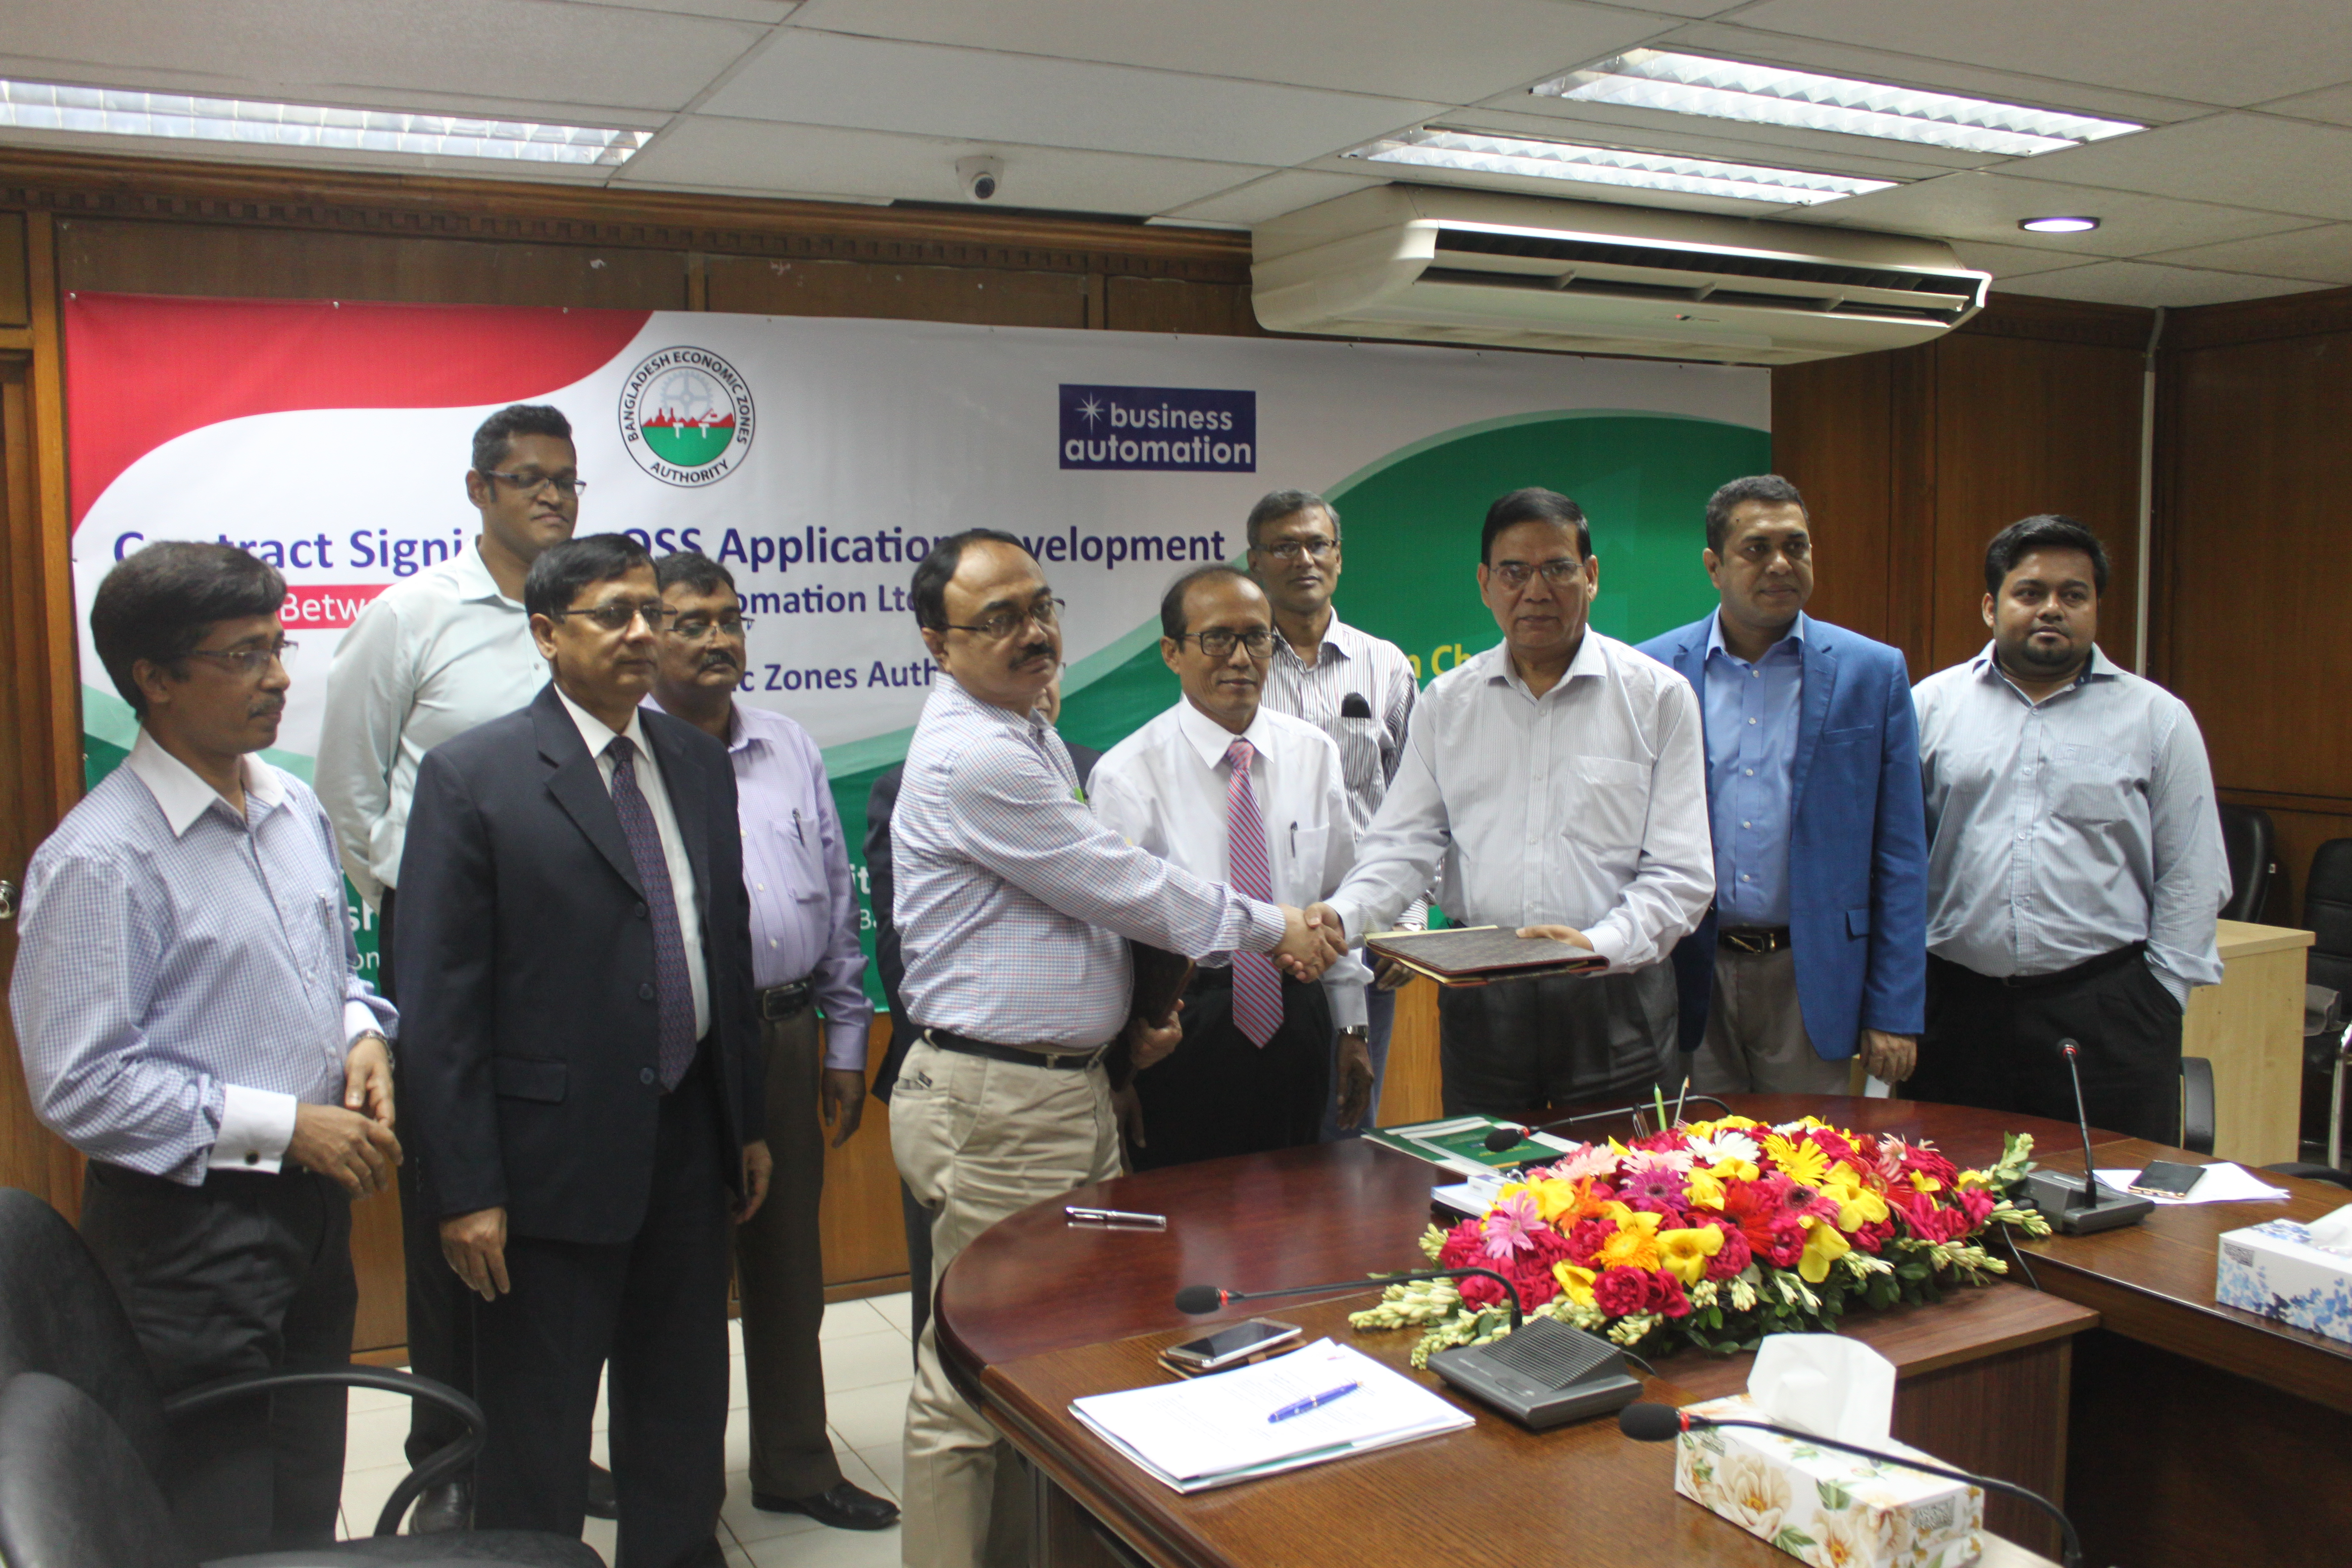 Contract Signing for OSS Application Development between Business Automation Ltd.